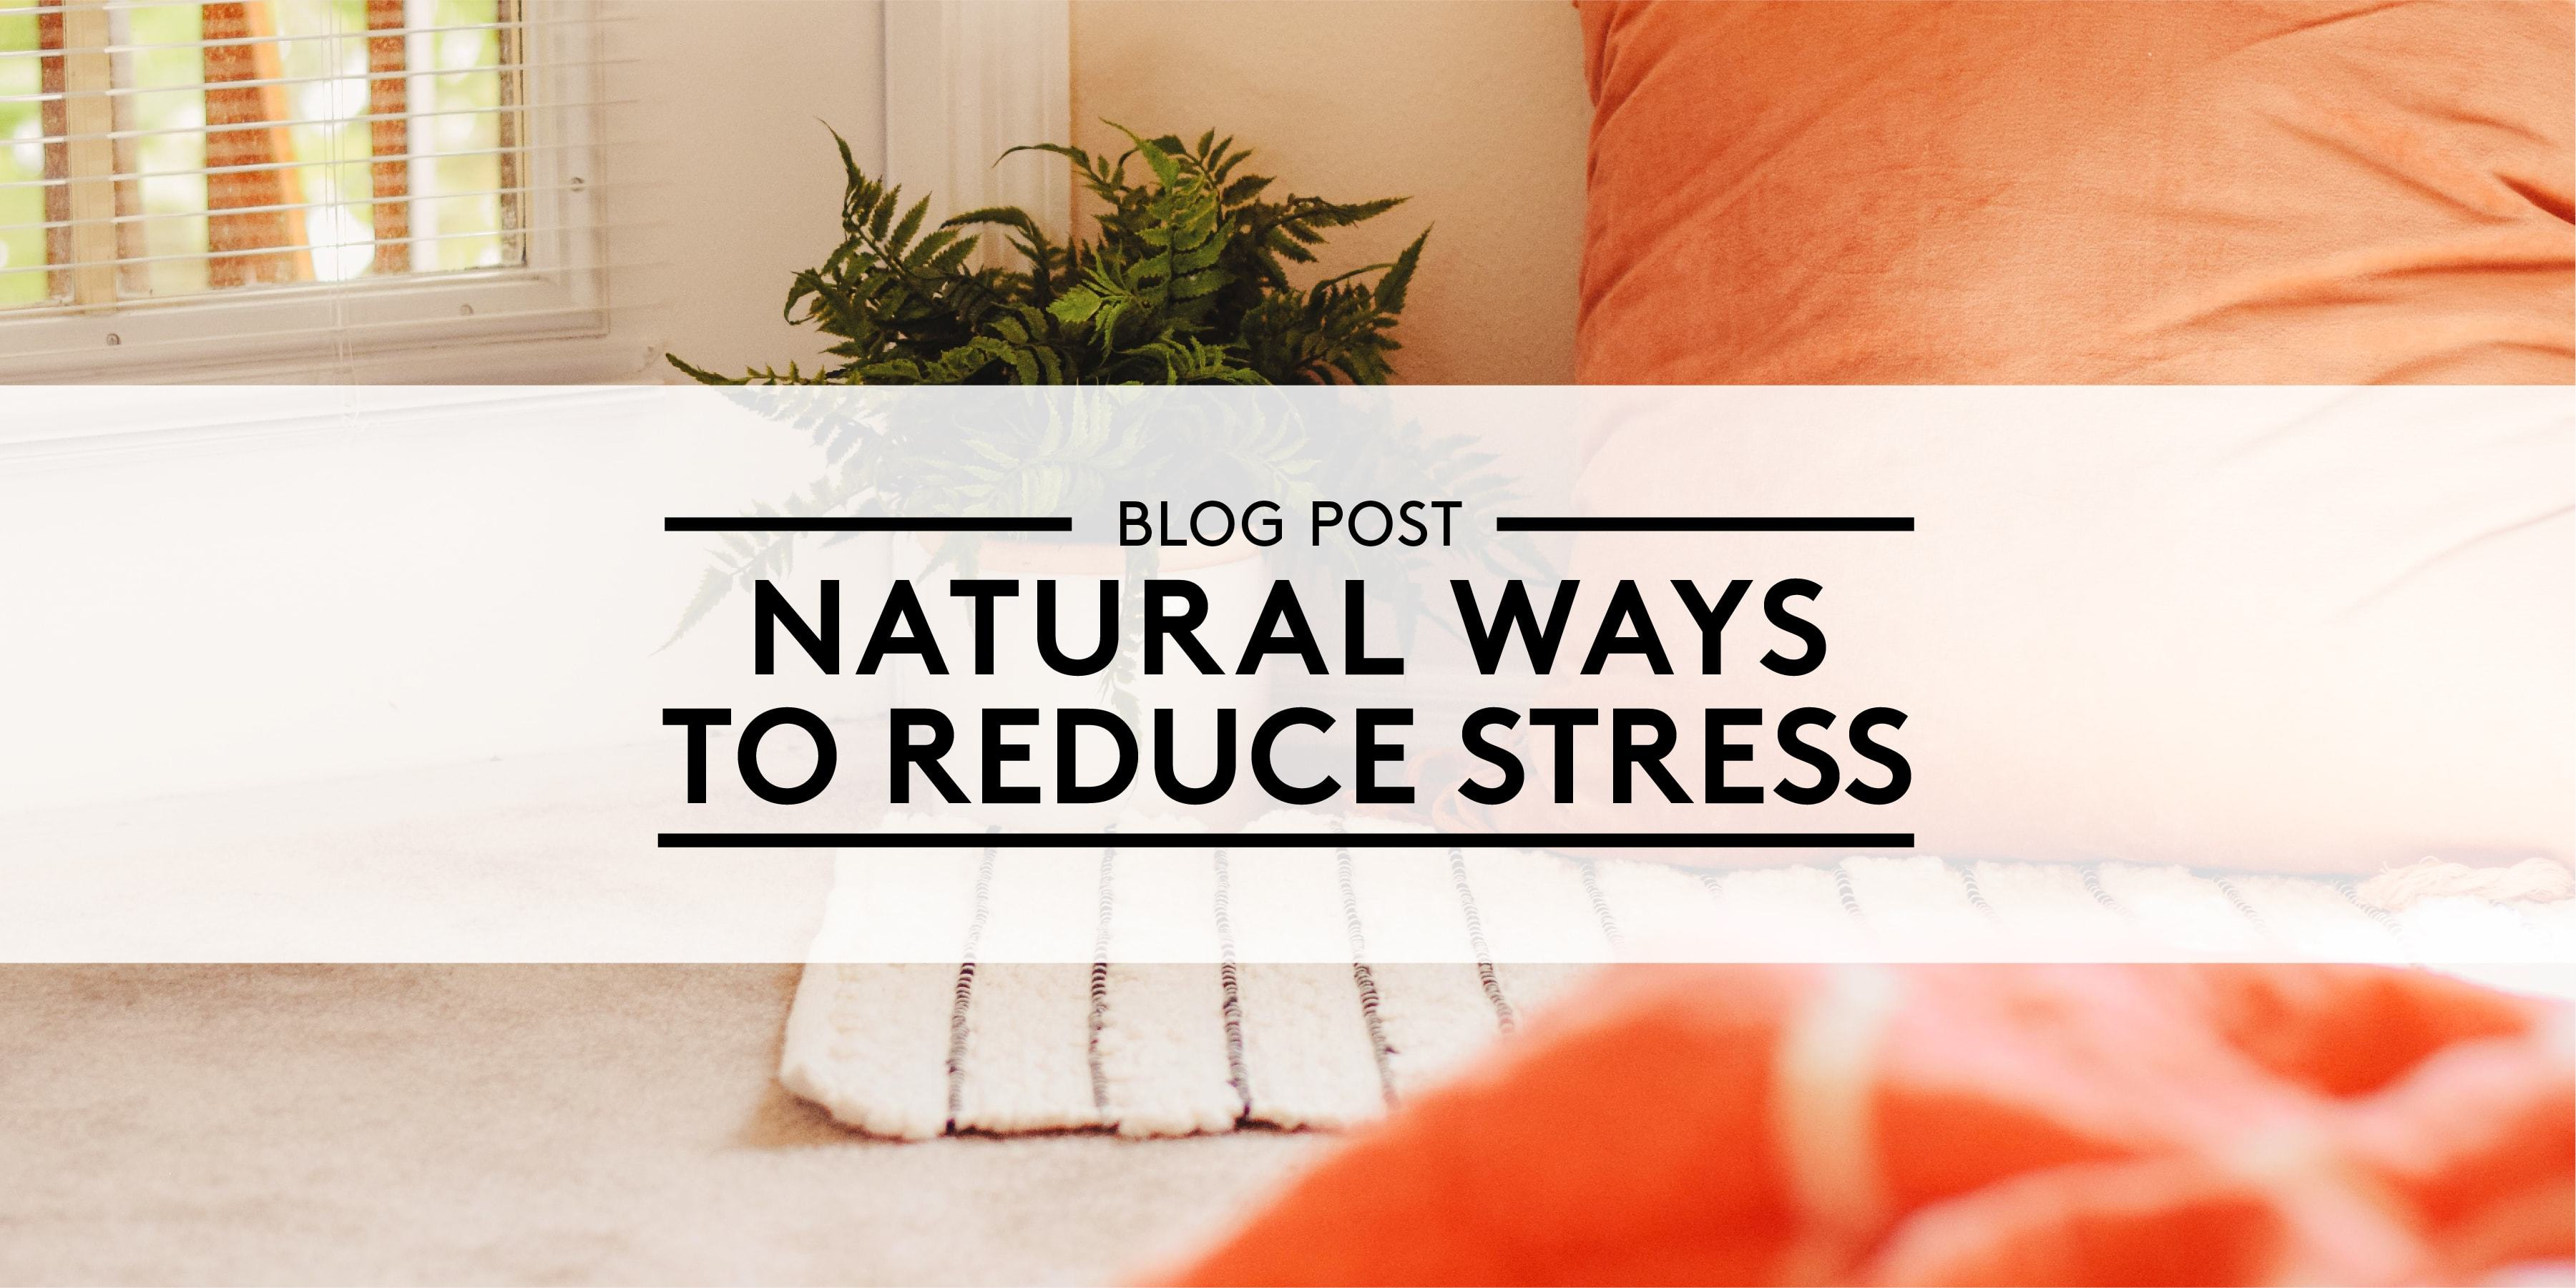 Natural Ways to Reduce Stress